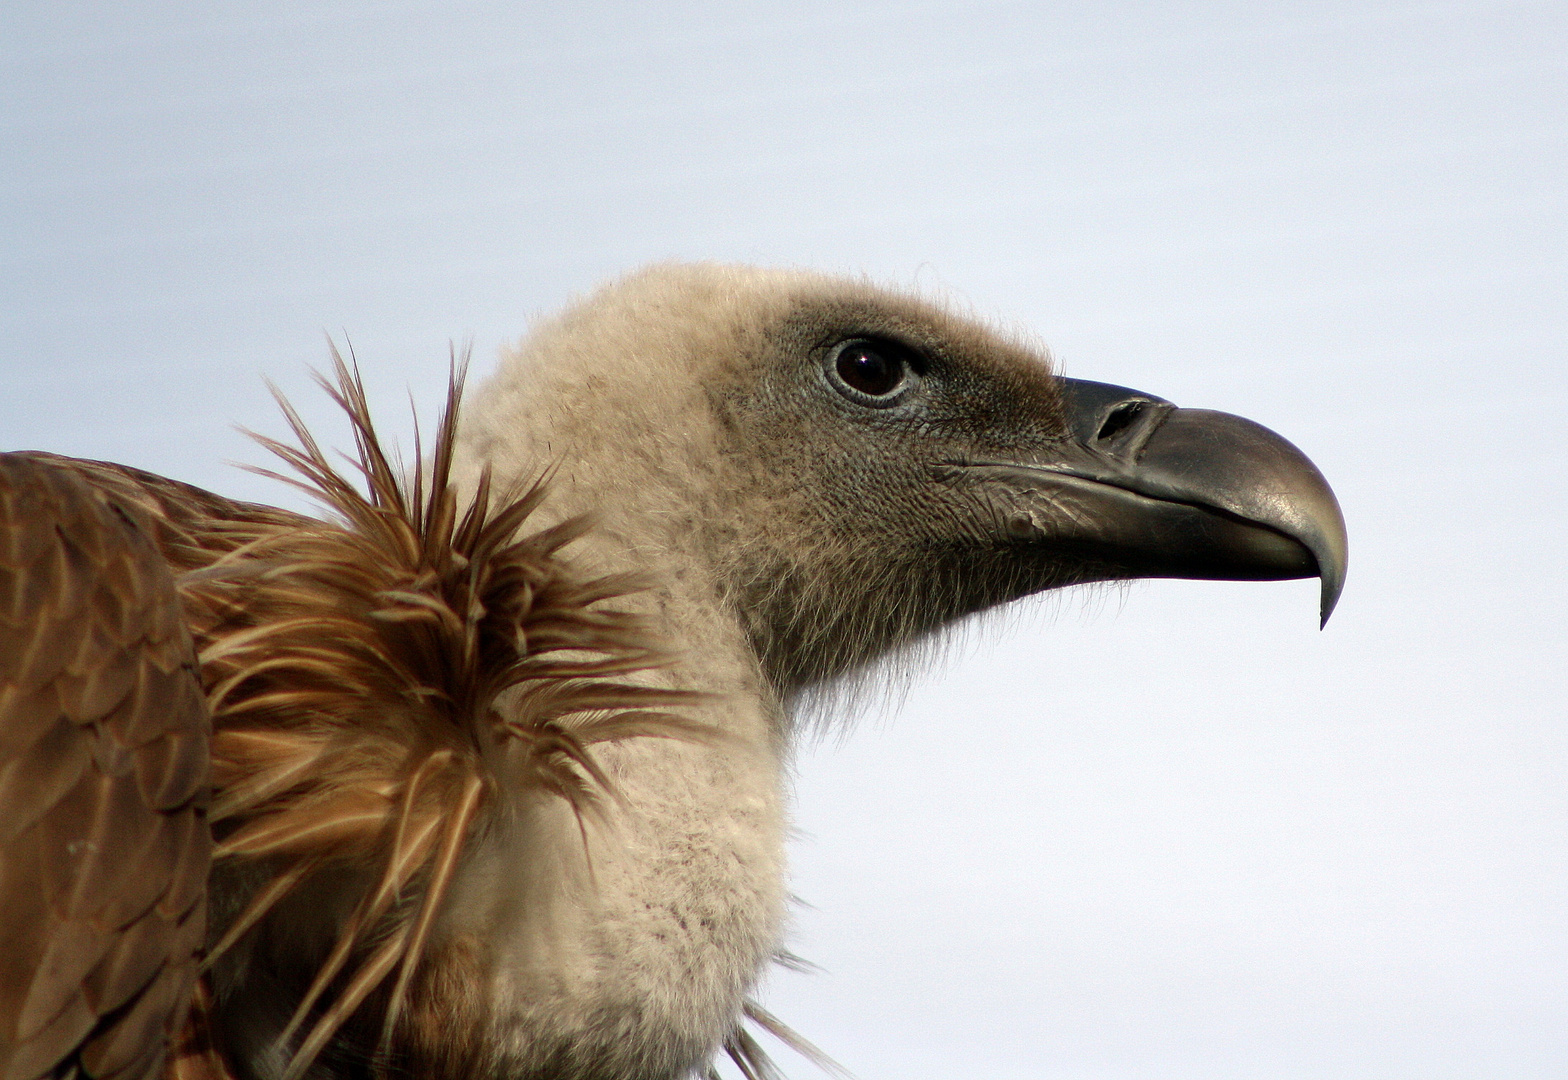 Big vulture is watching you